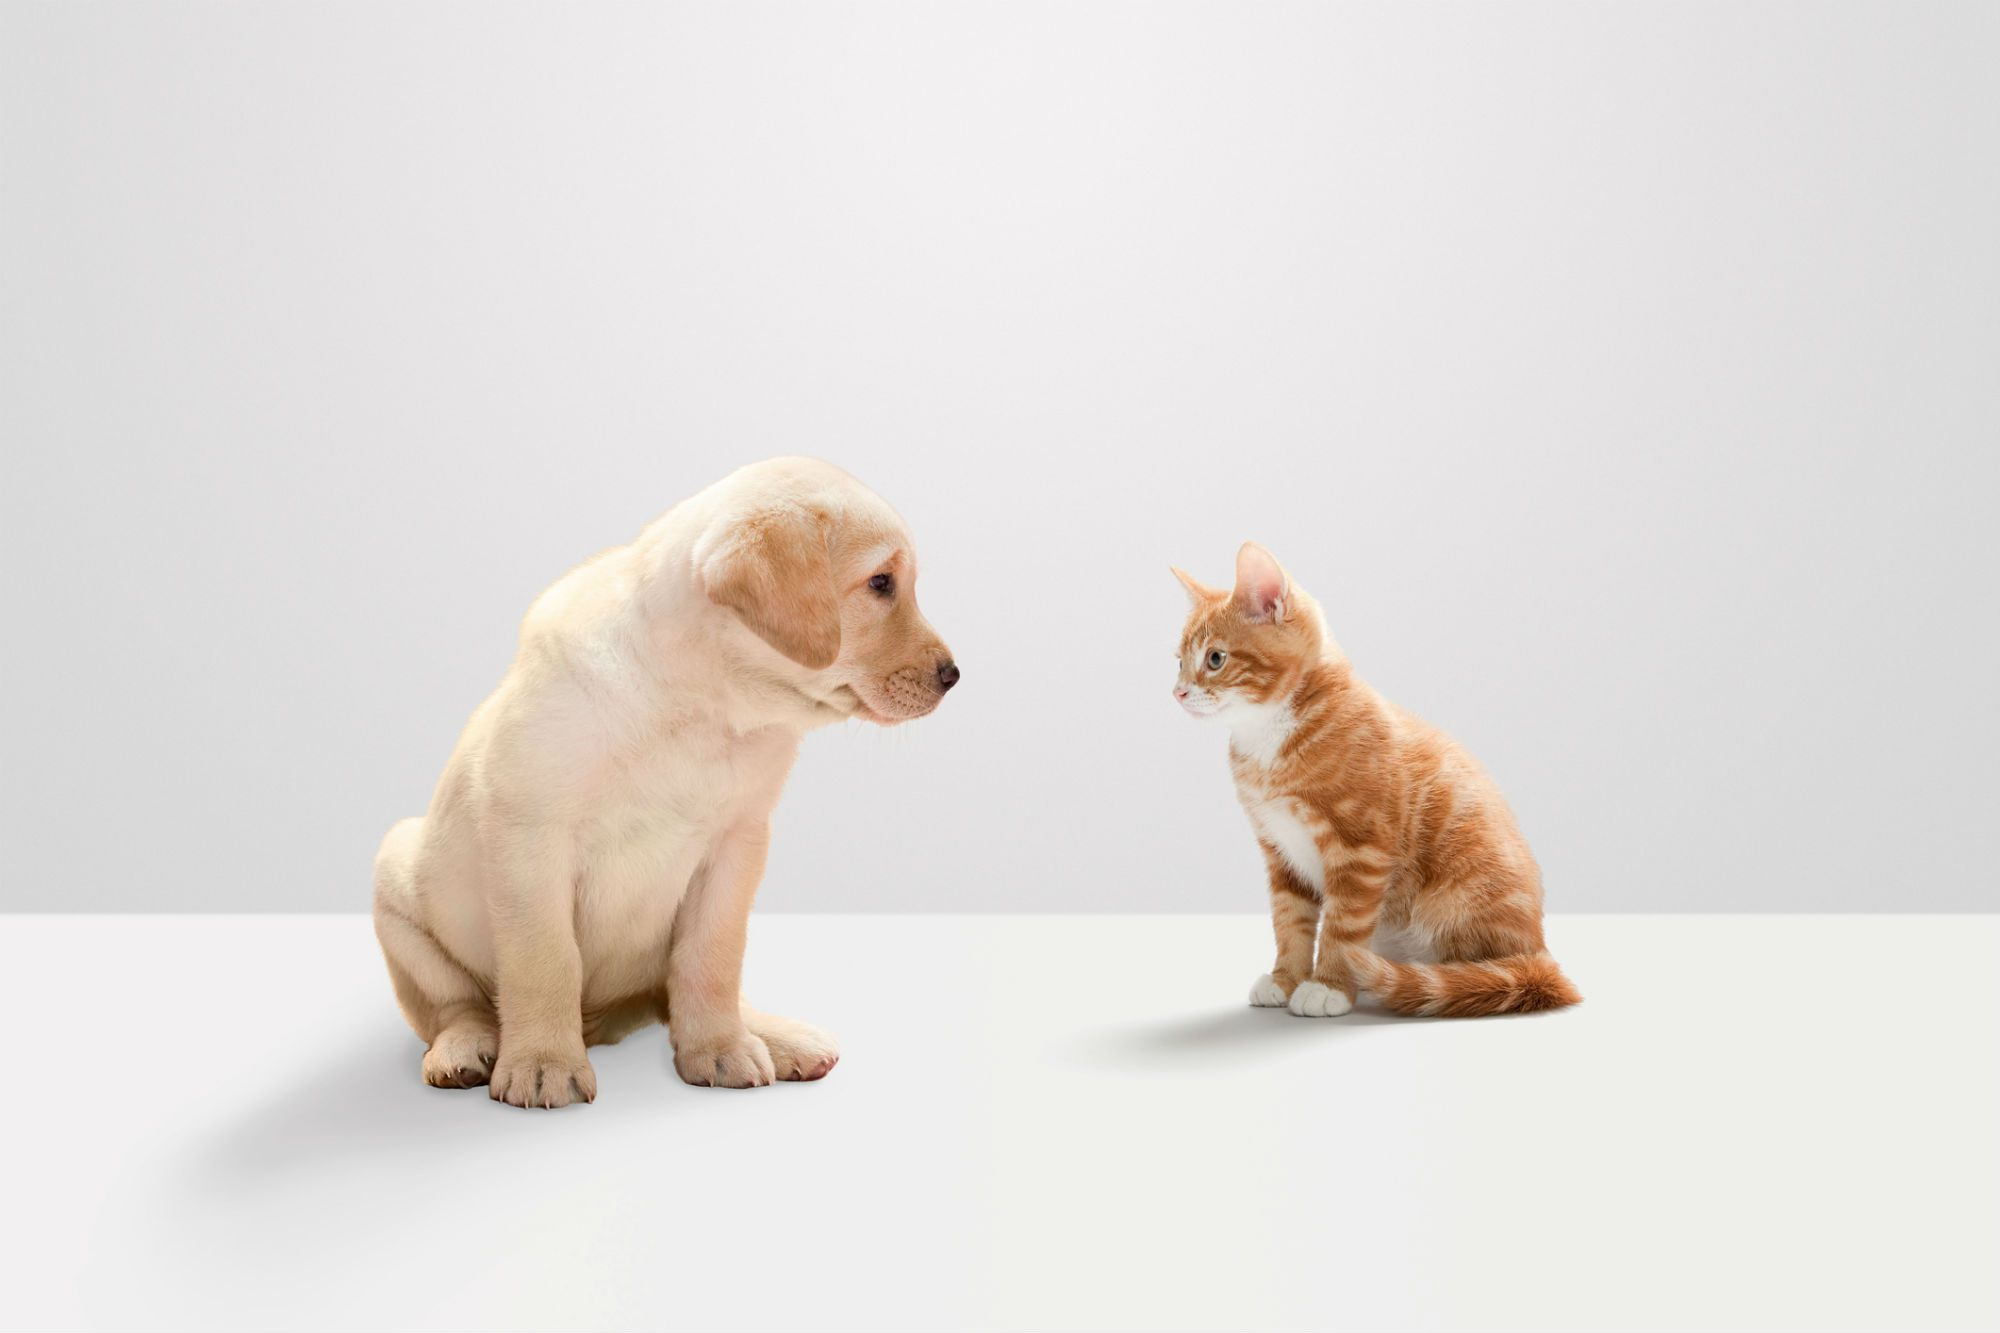 Kittens vs Puppies 10 Reasons Puppies Are Better